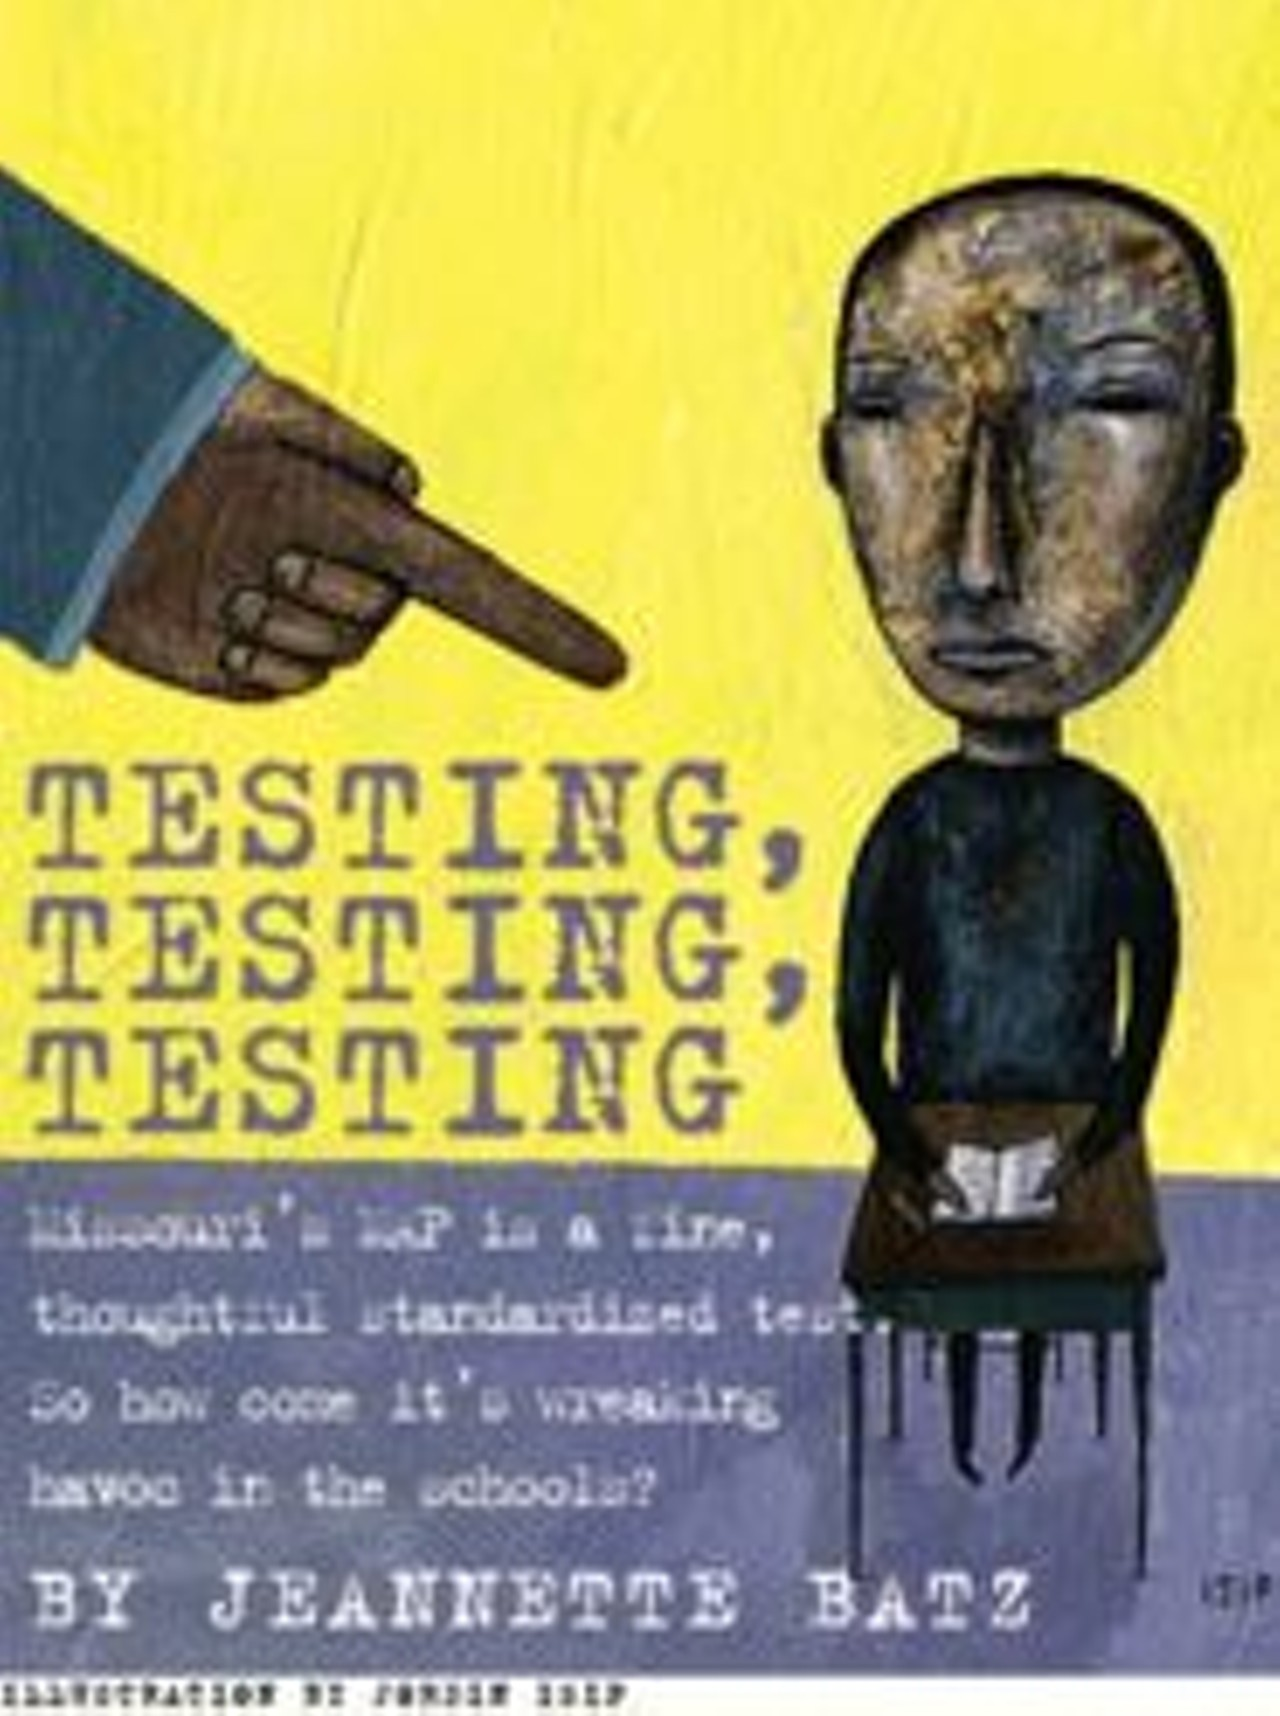 Testing, Testing, Testing | Feature | St. Louis | St. Louis News and ...